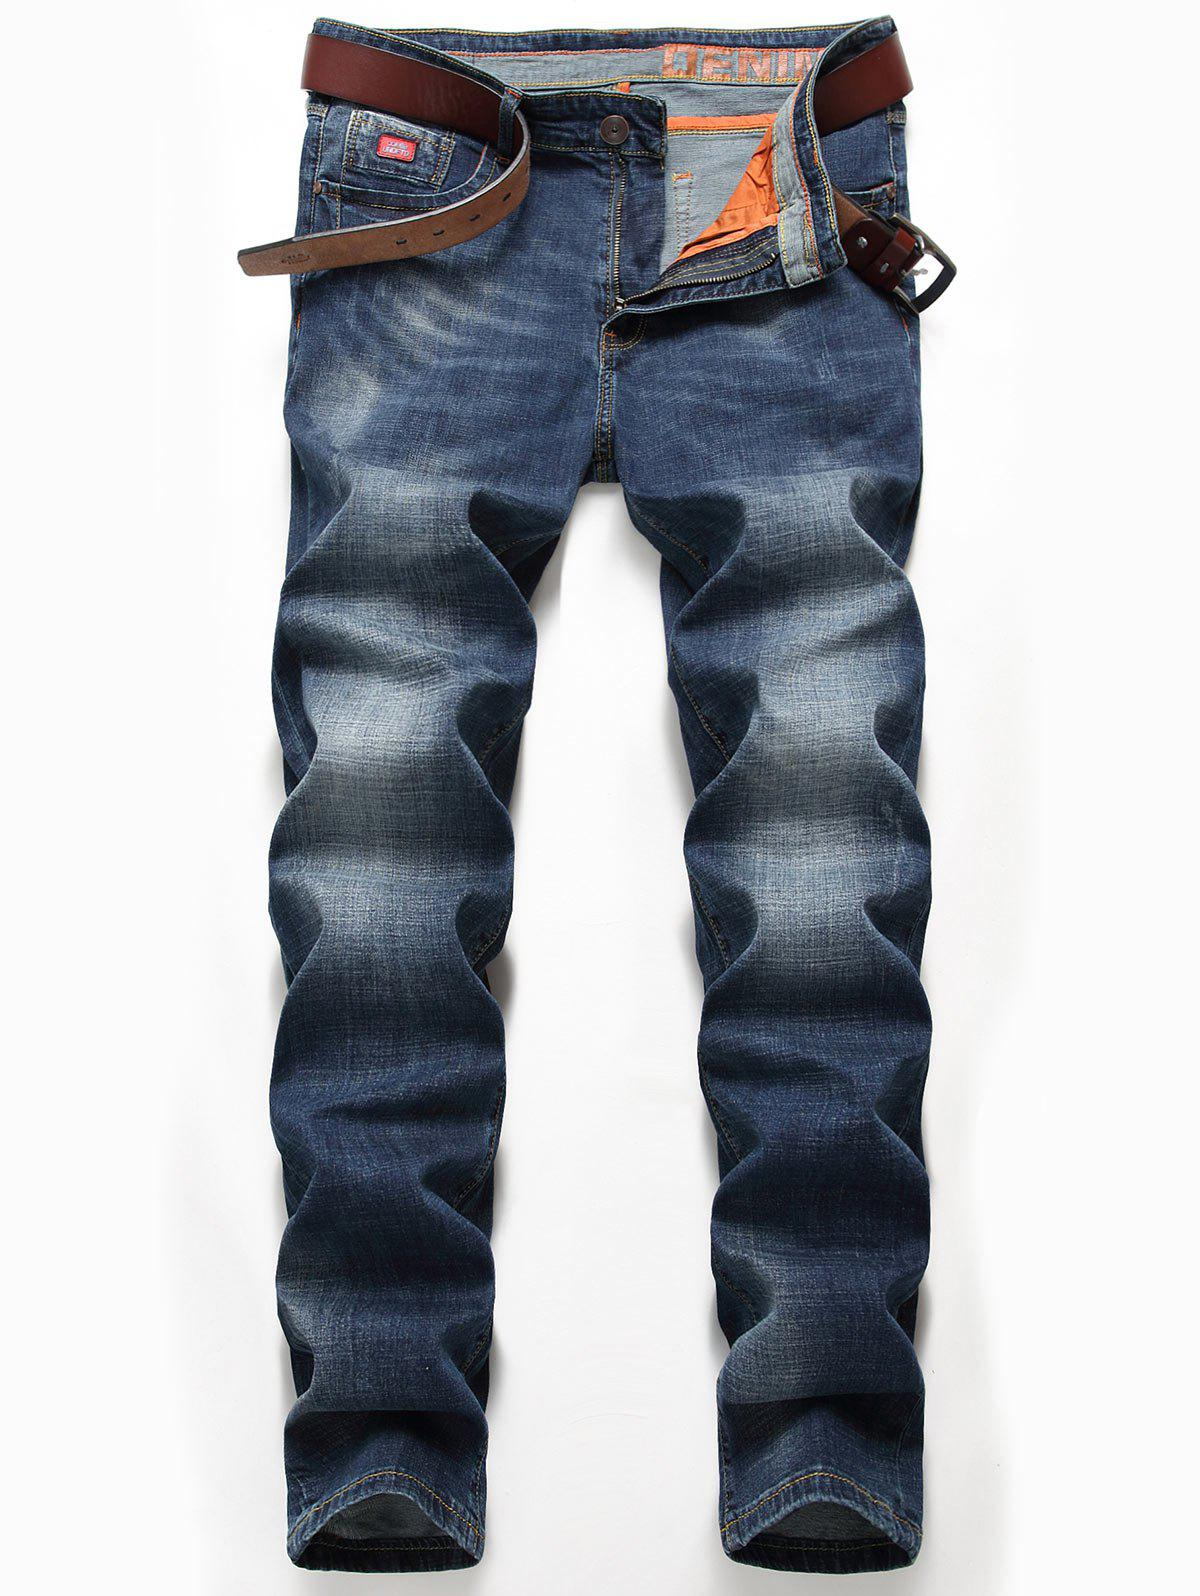 New Zip Fly Straight Leg Classic Jeans